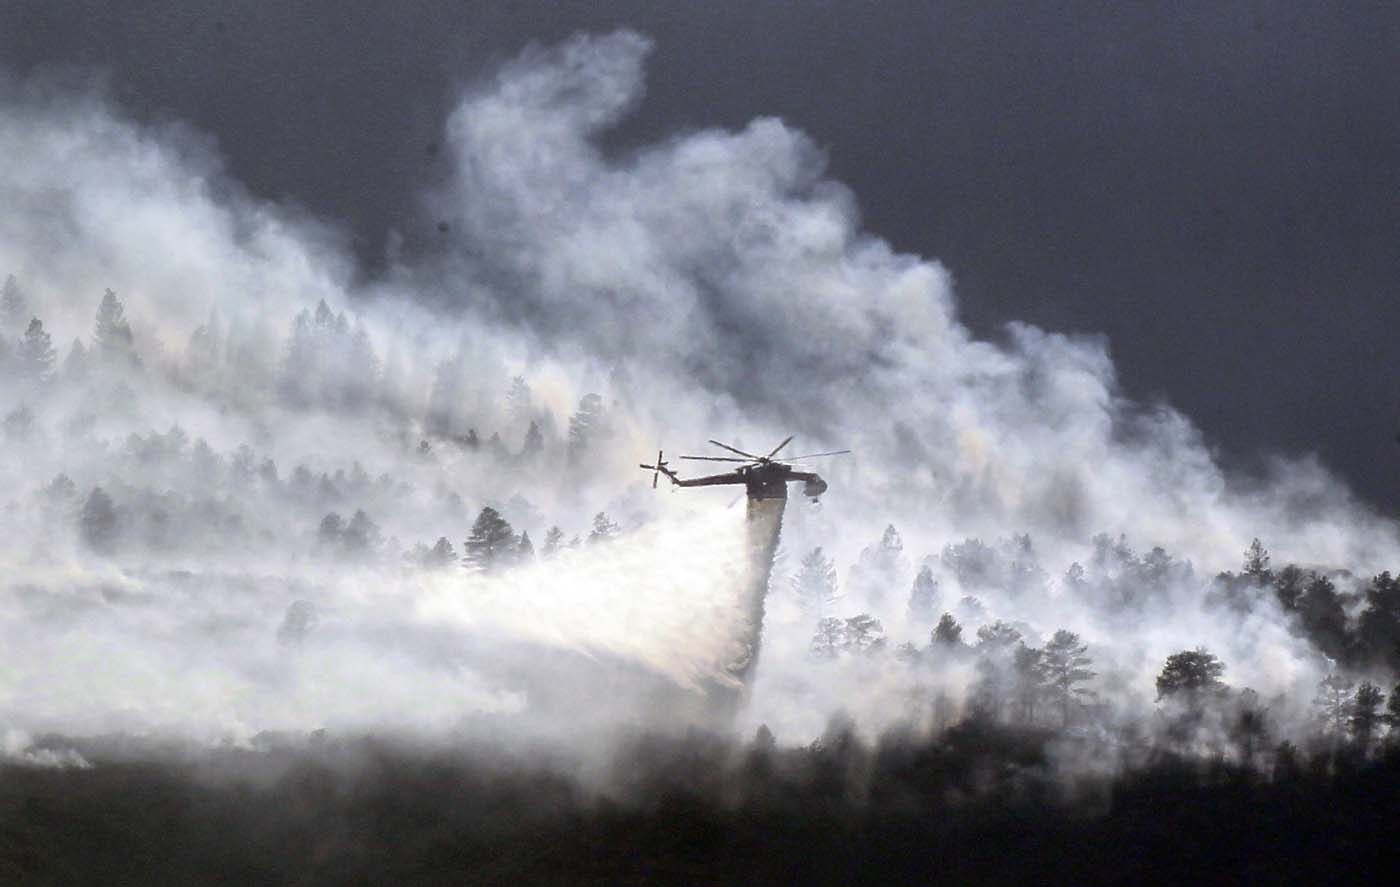 JUNE 27: A helicopter drops water on the Waldo Canyon fire burning behind the U.S. Air Force Academy, west of Colorado Springs, Colorado June 27, 2012. (Rick Wilking/Reuters)